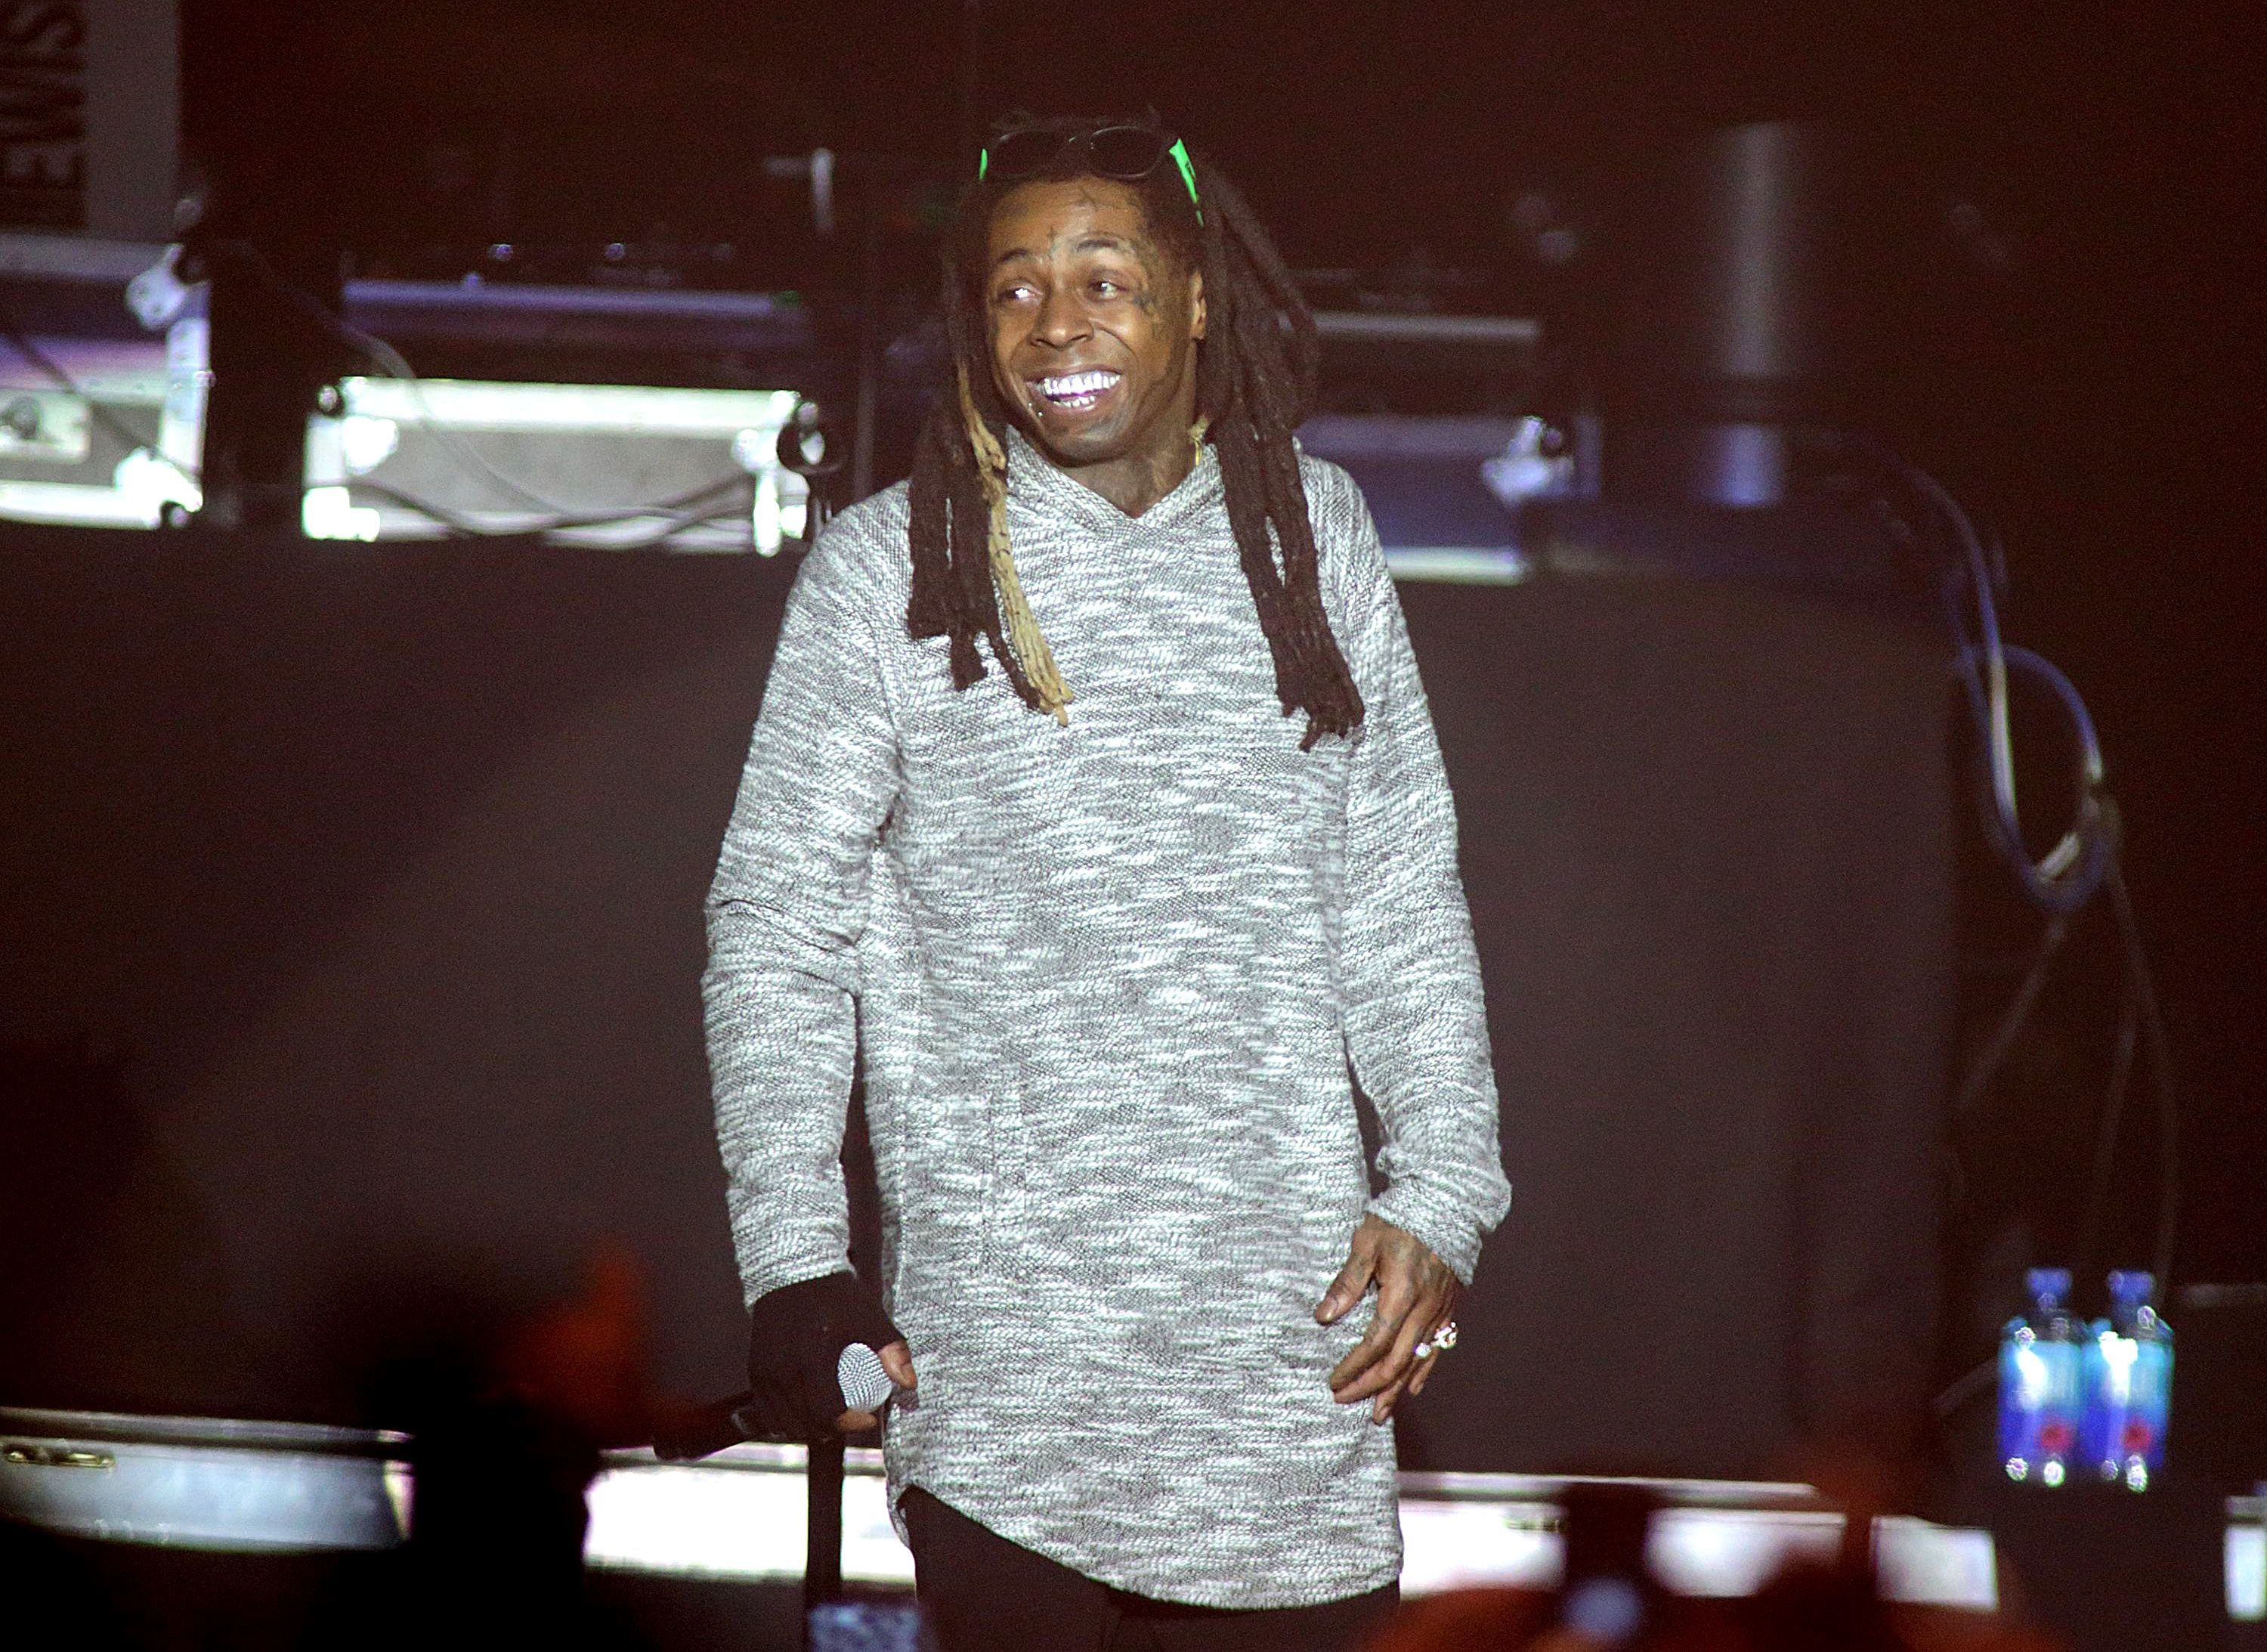 Lil Wayne worked as suicide prevention aide at Rikers